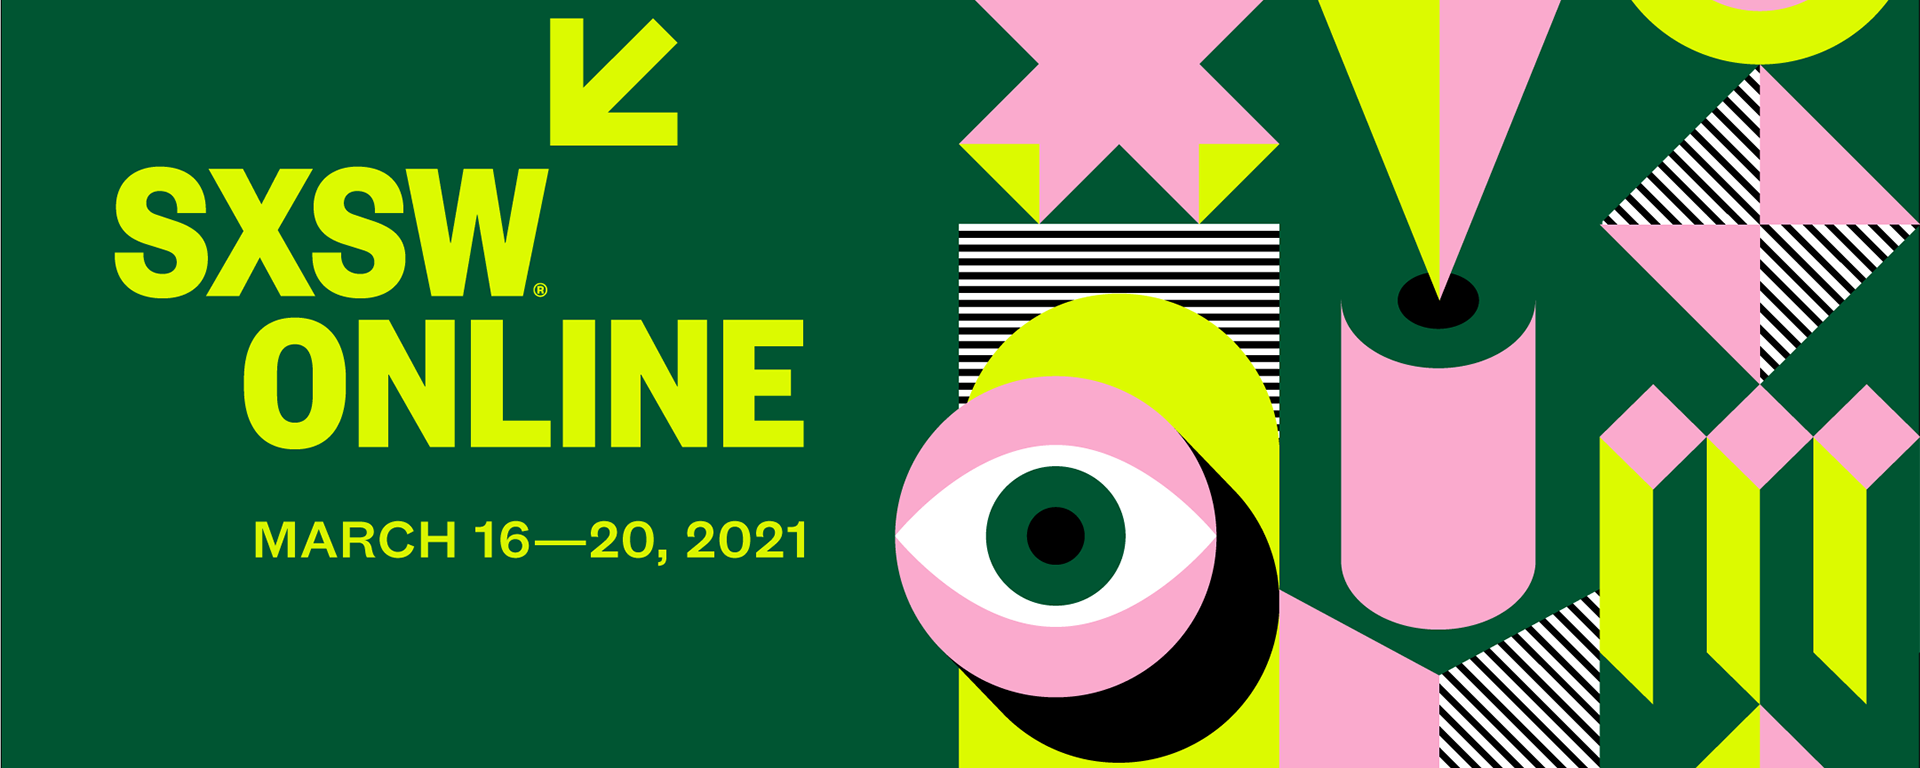 "Green, yellow, and pink graphic including digital shapes and an image of an eye, reading ""SXSW Online: March 16-20."""